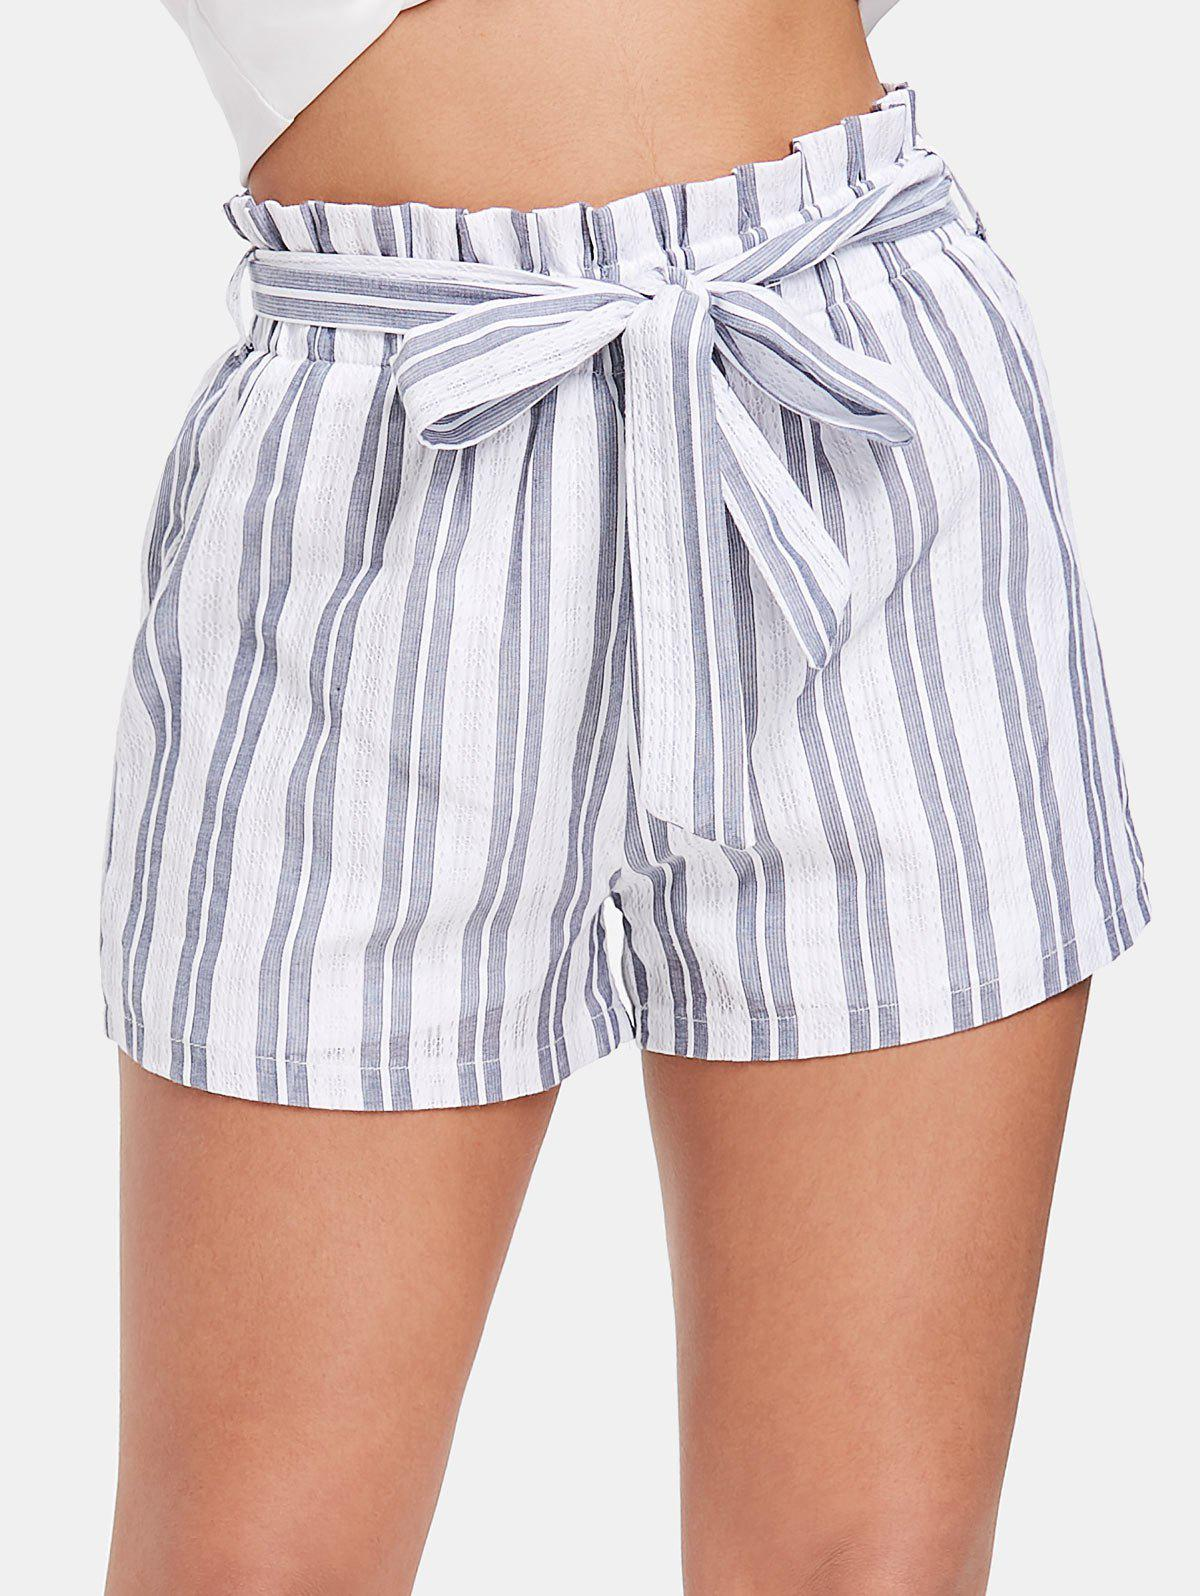 aa11261e33 59% OFF] Striped High Waist Shorts With Belt | Rosegal